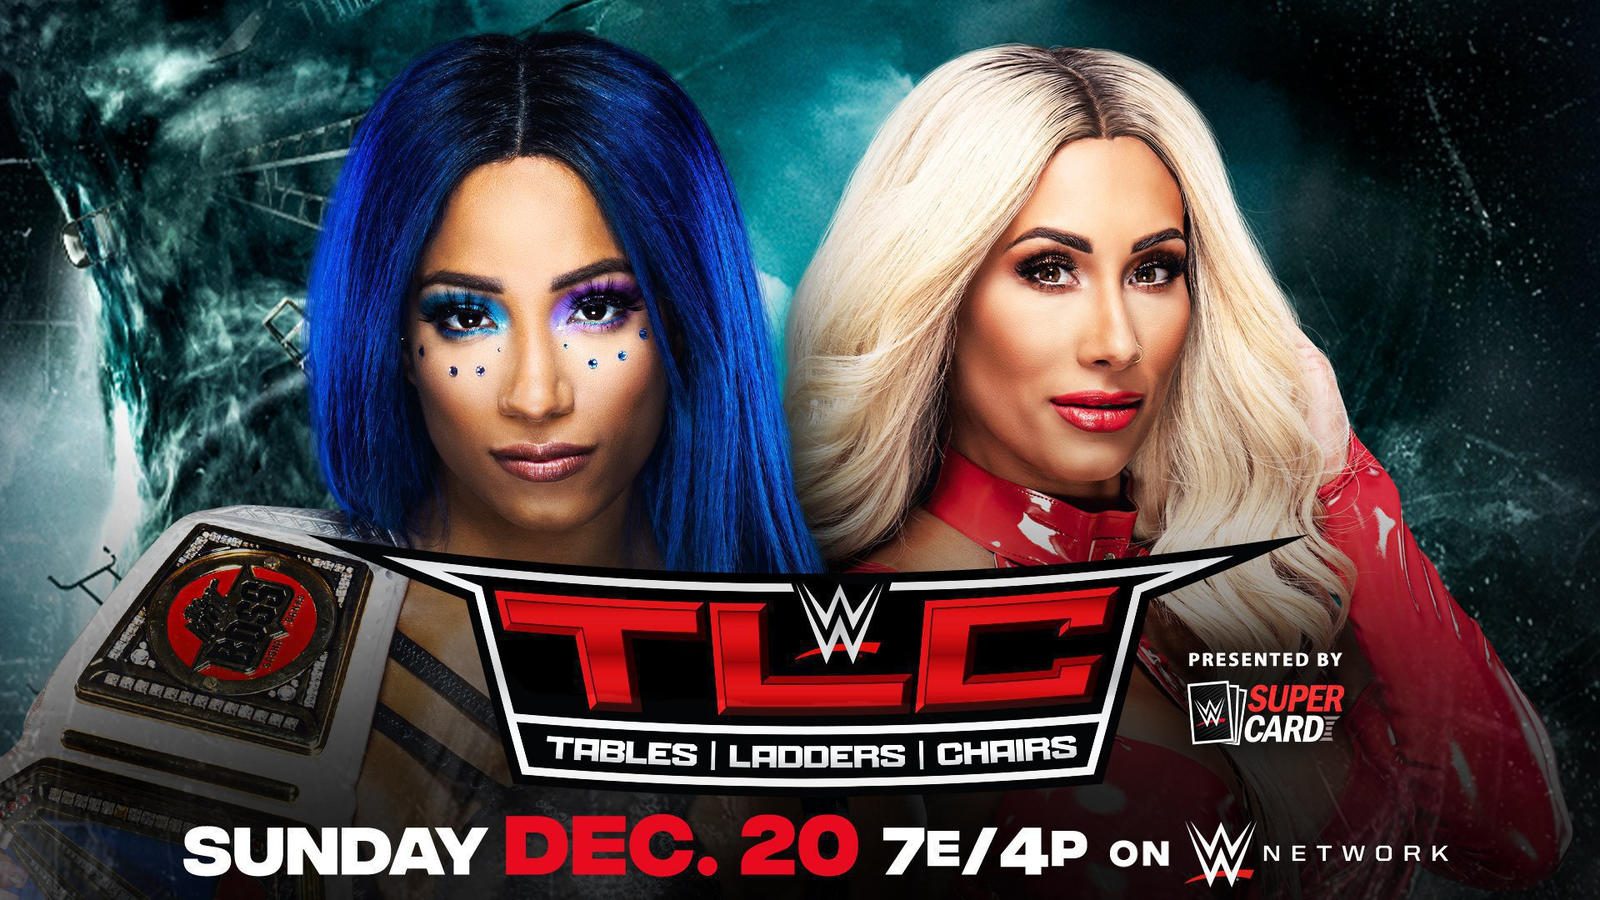 Carmella Vs. Sasha Banks Set For WWE TLC